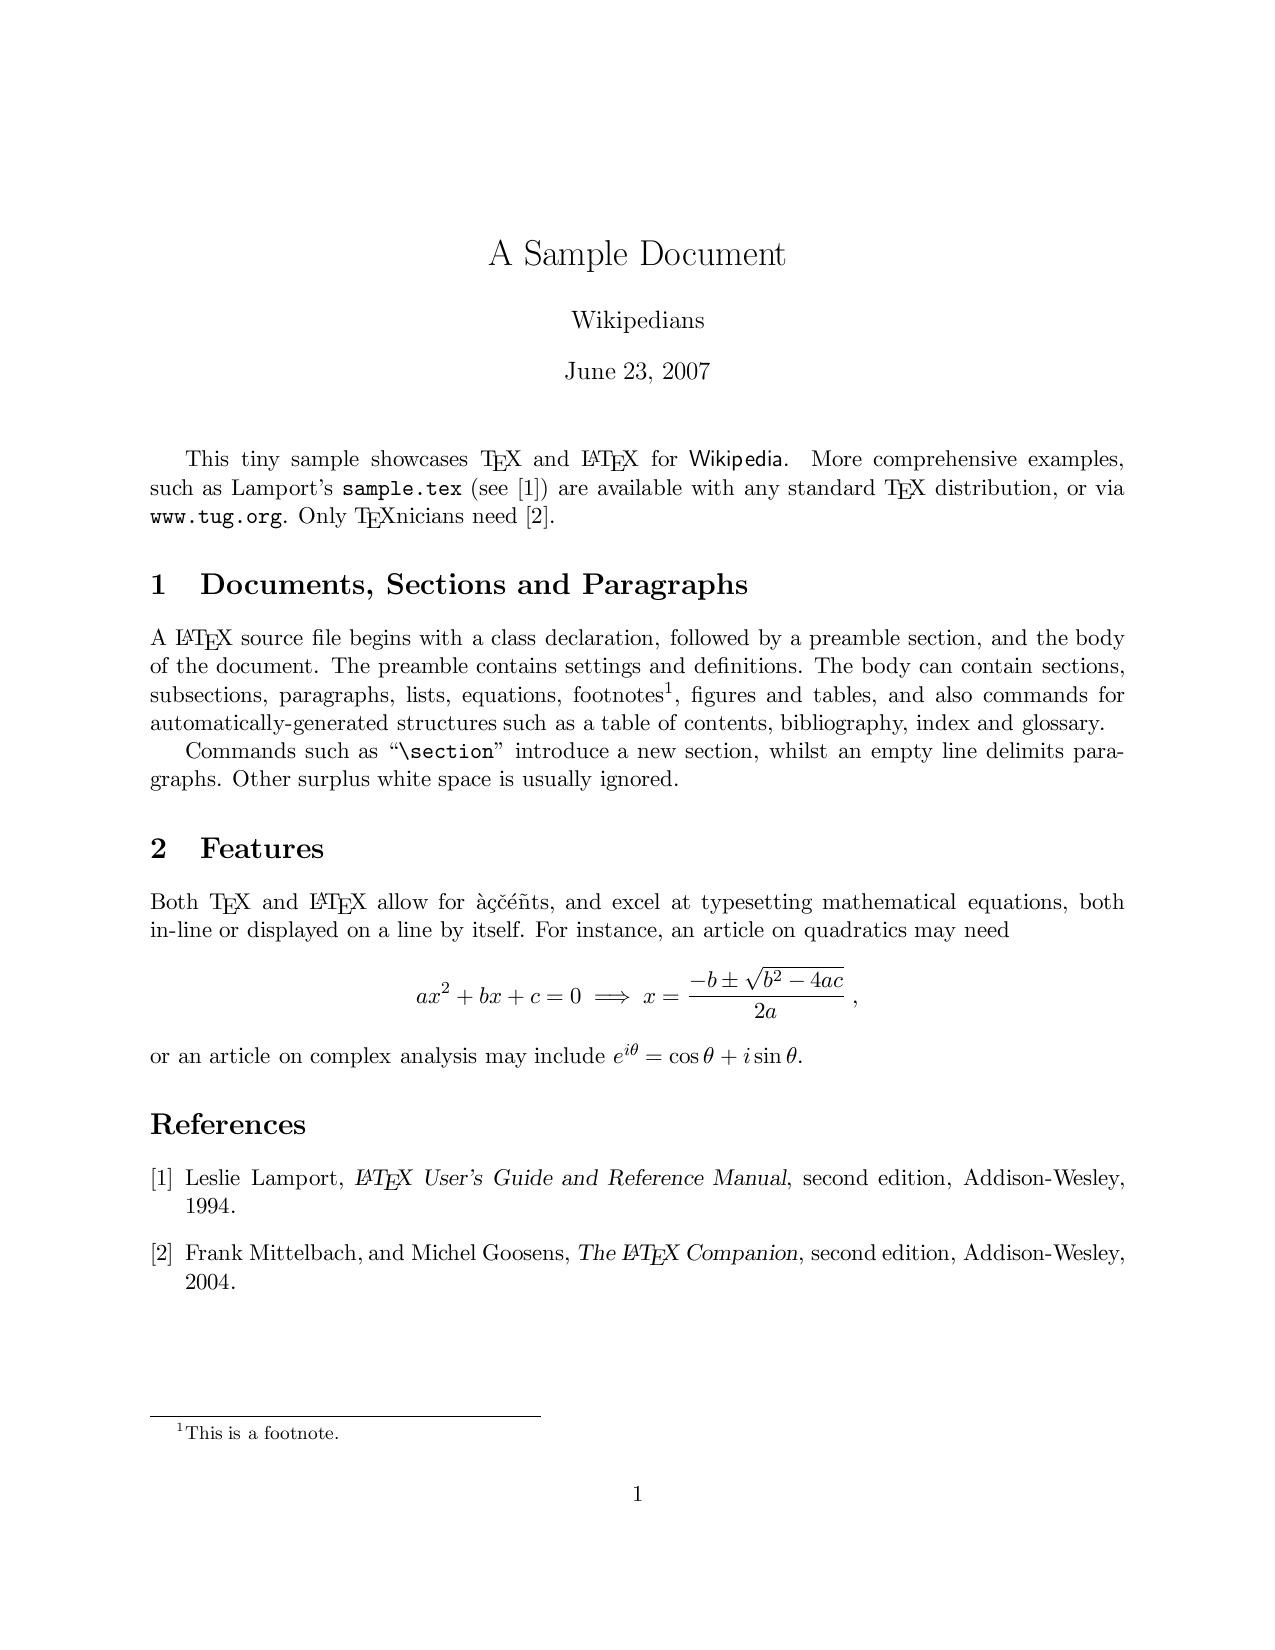 Example of thesis written in latex